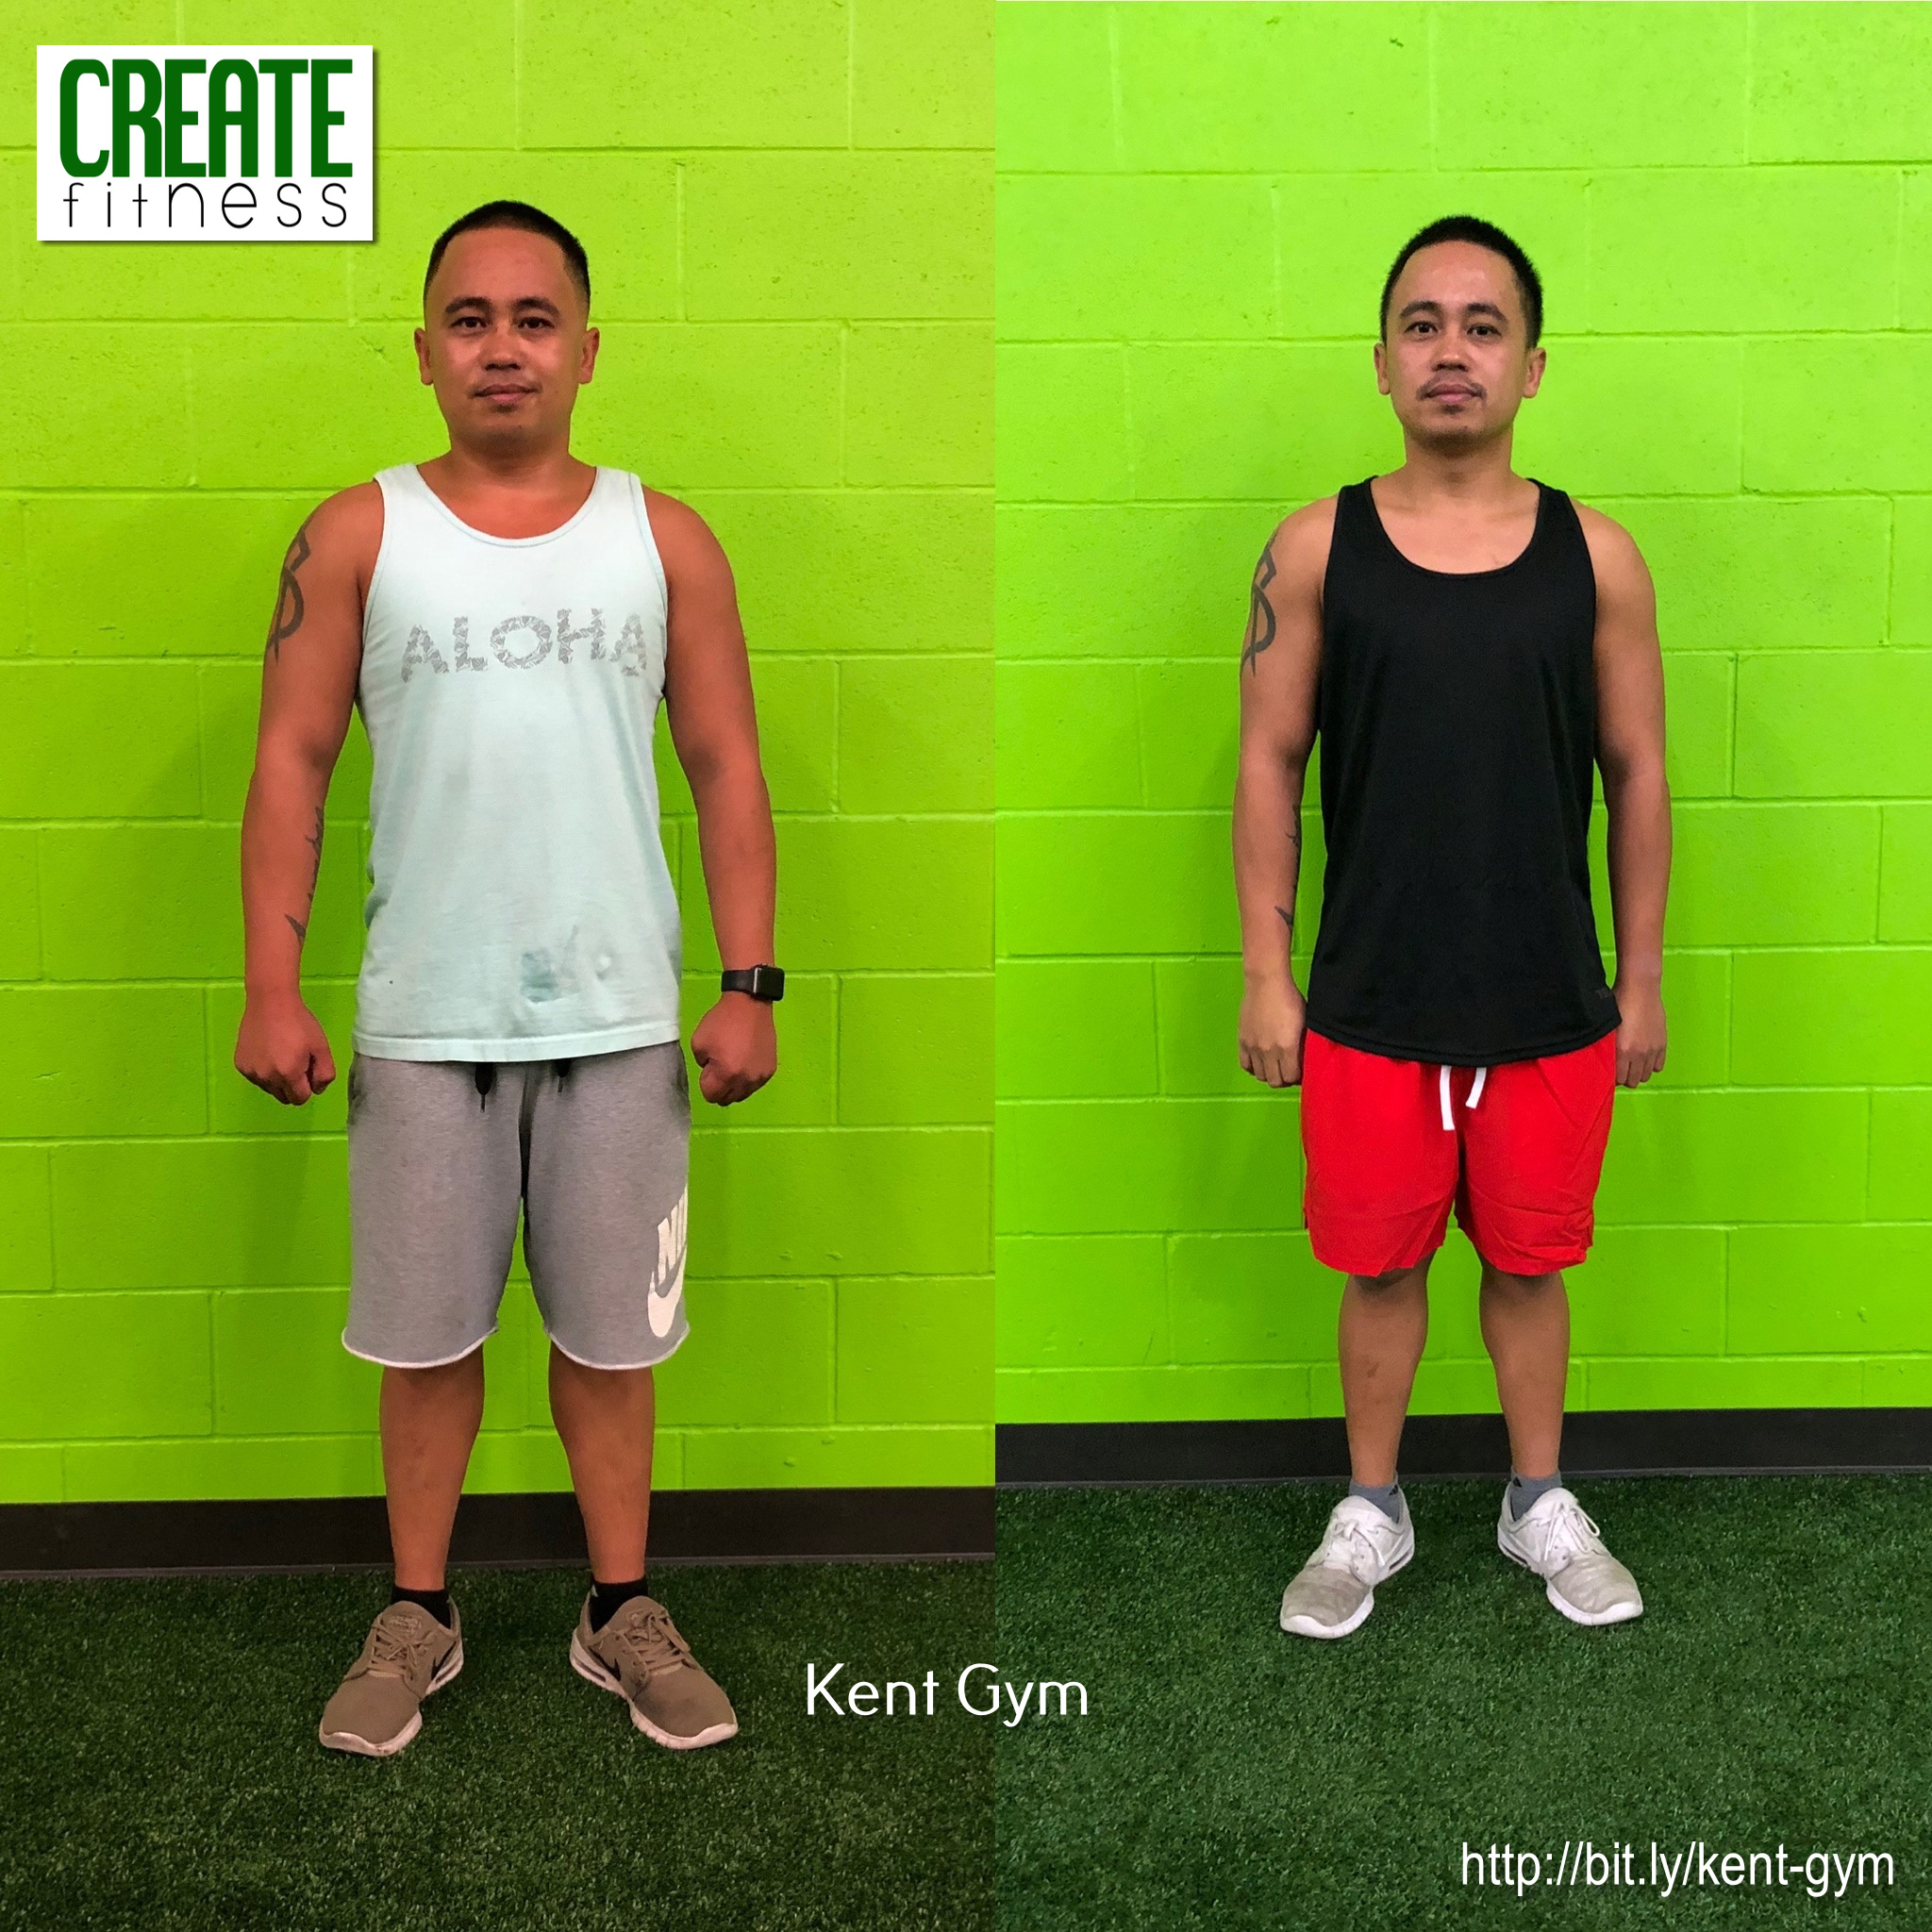 Create Fitness Highlights the Benefits of Group Training